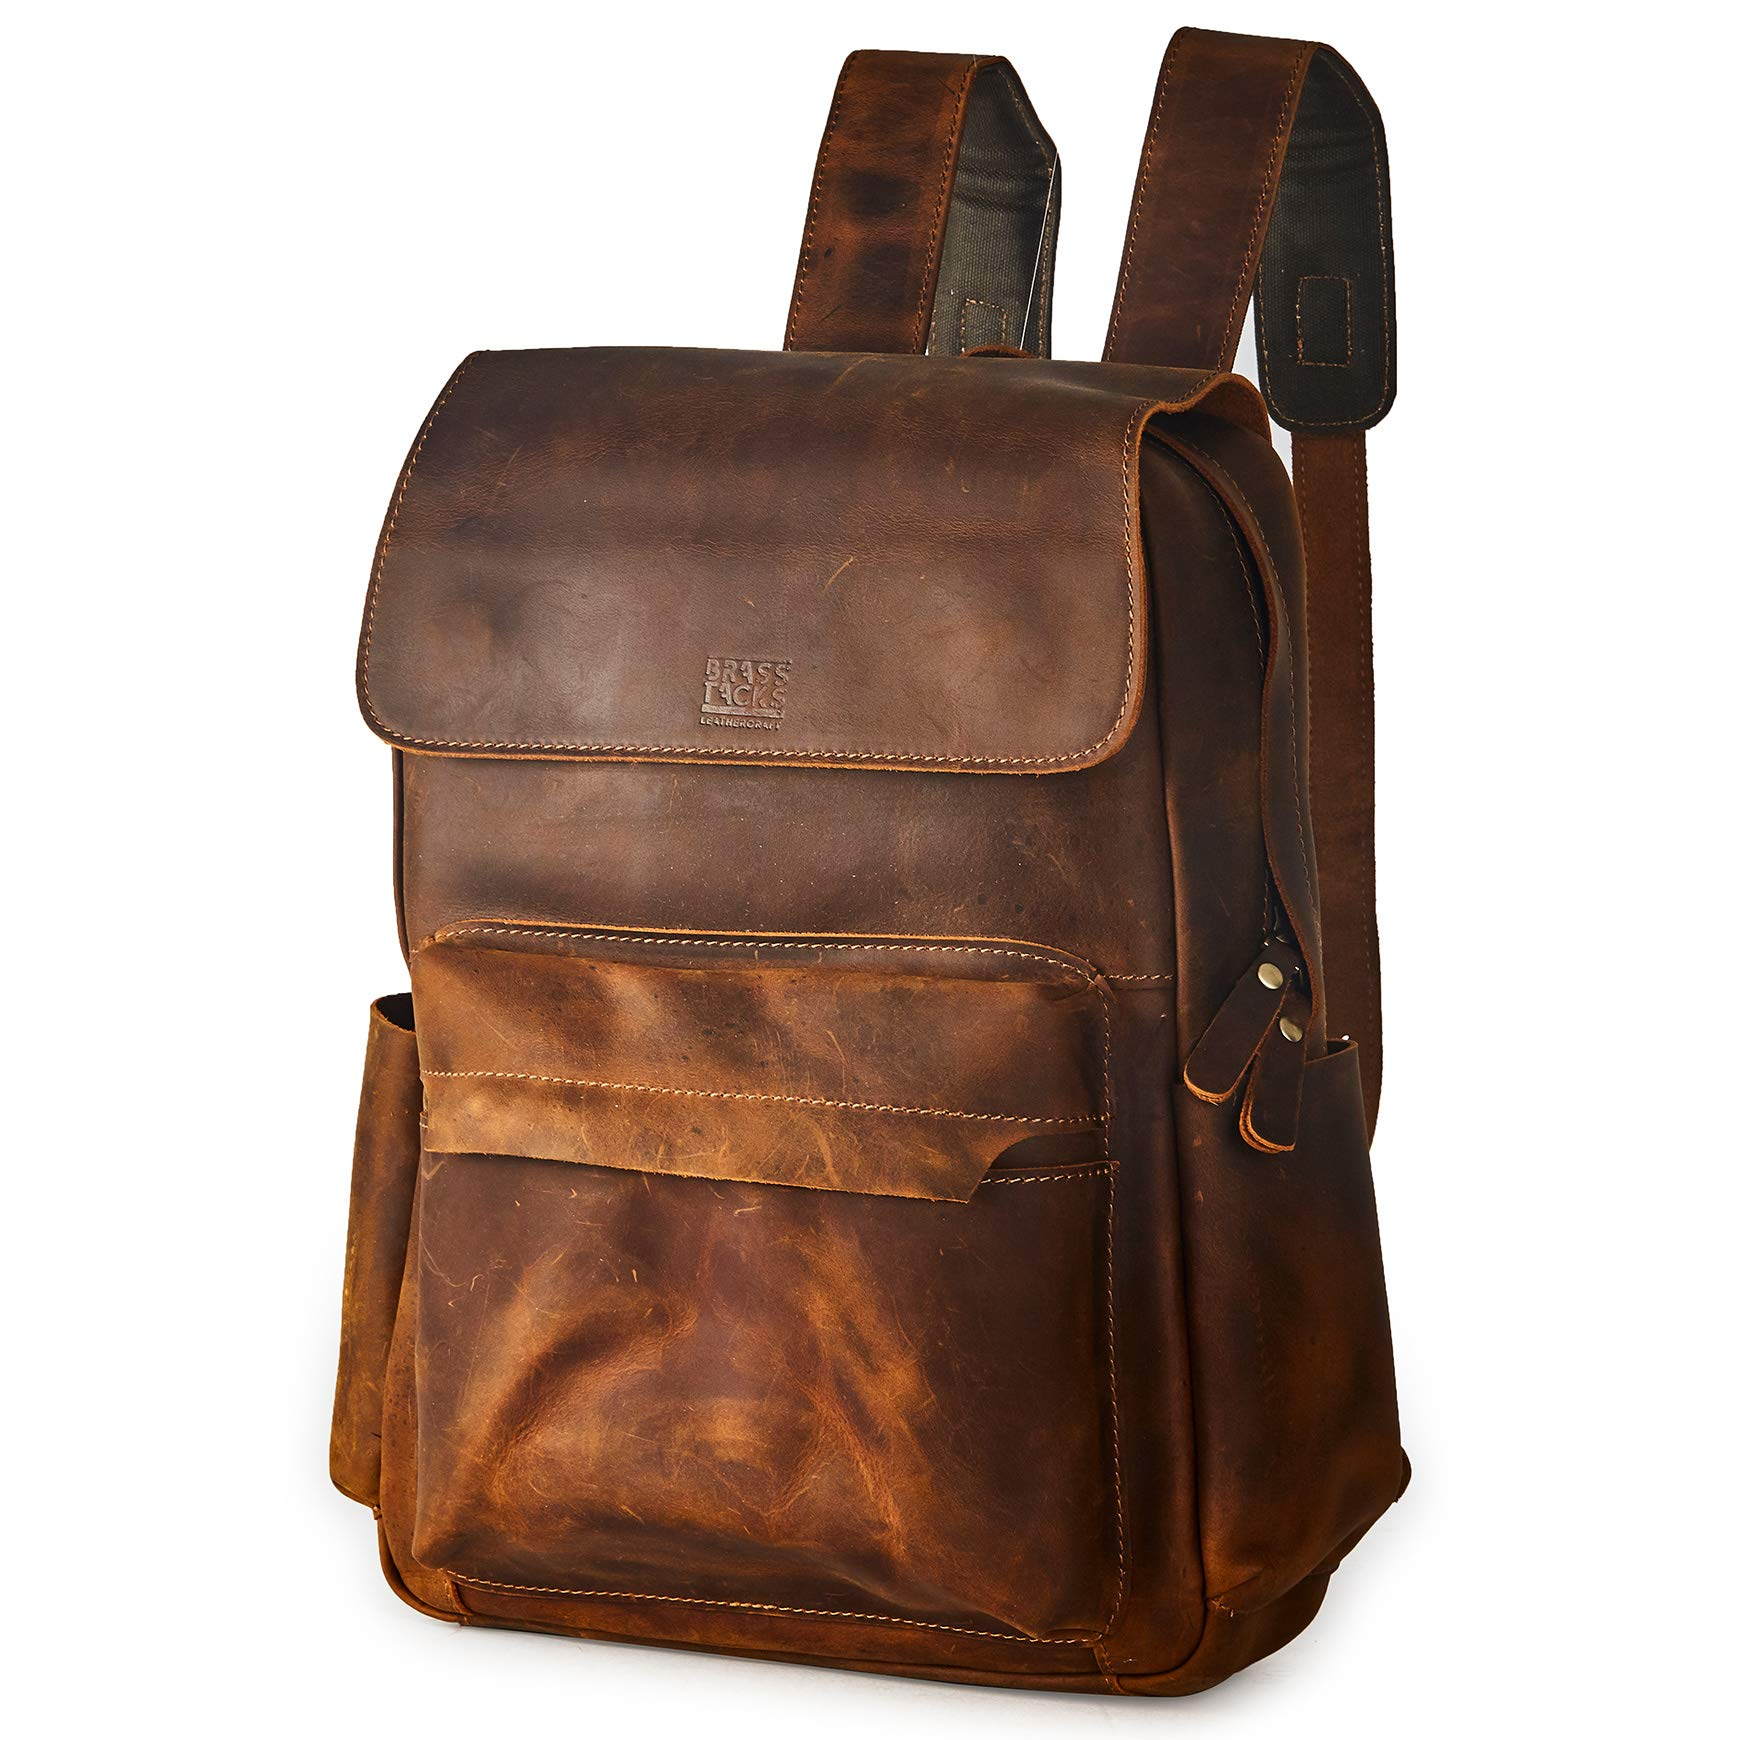 RASS TACKS Leathercraft Men's Full Crazy Horse Genuine Leather Backpack 15.6''Laptop Vintage Style Bookbag